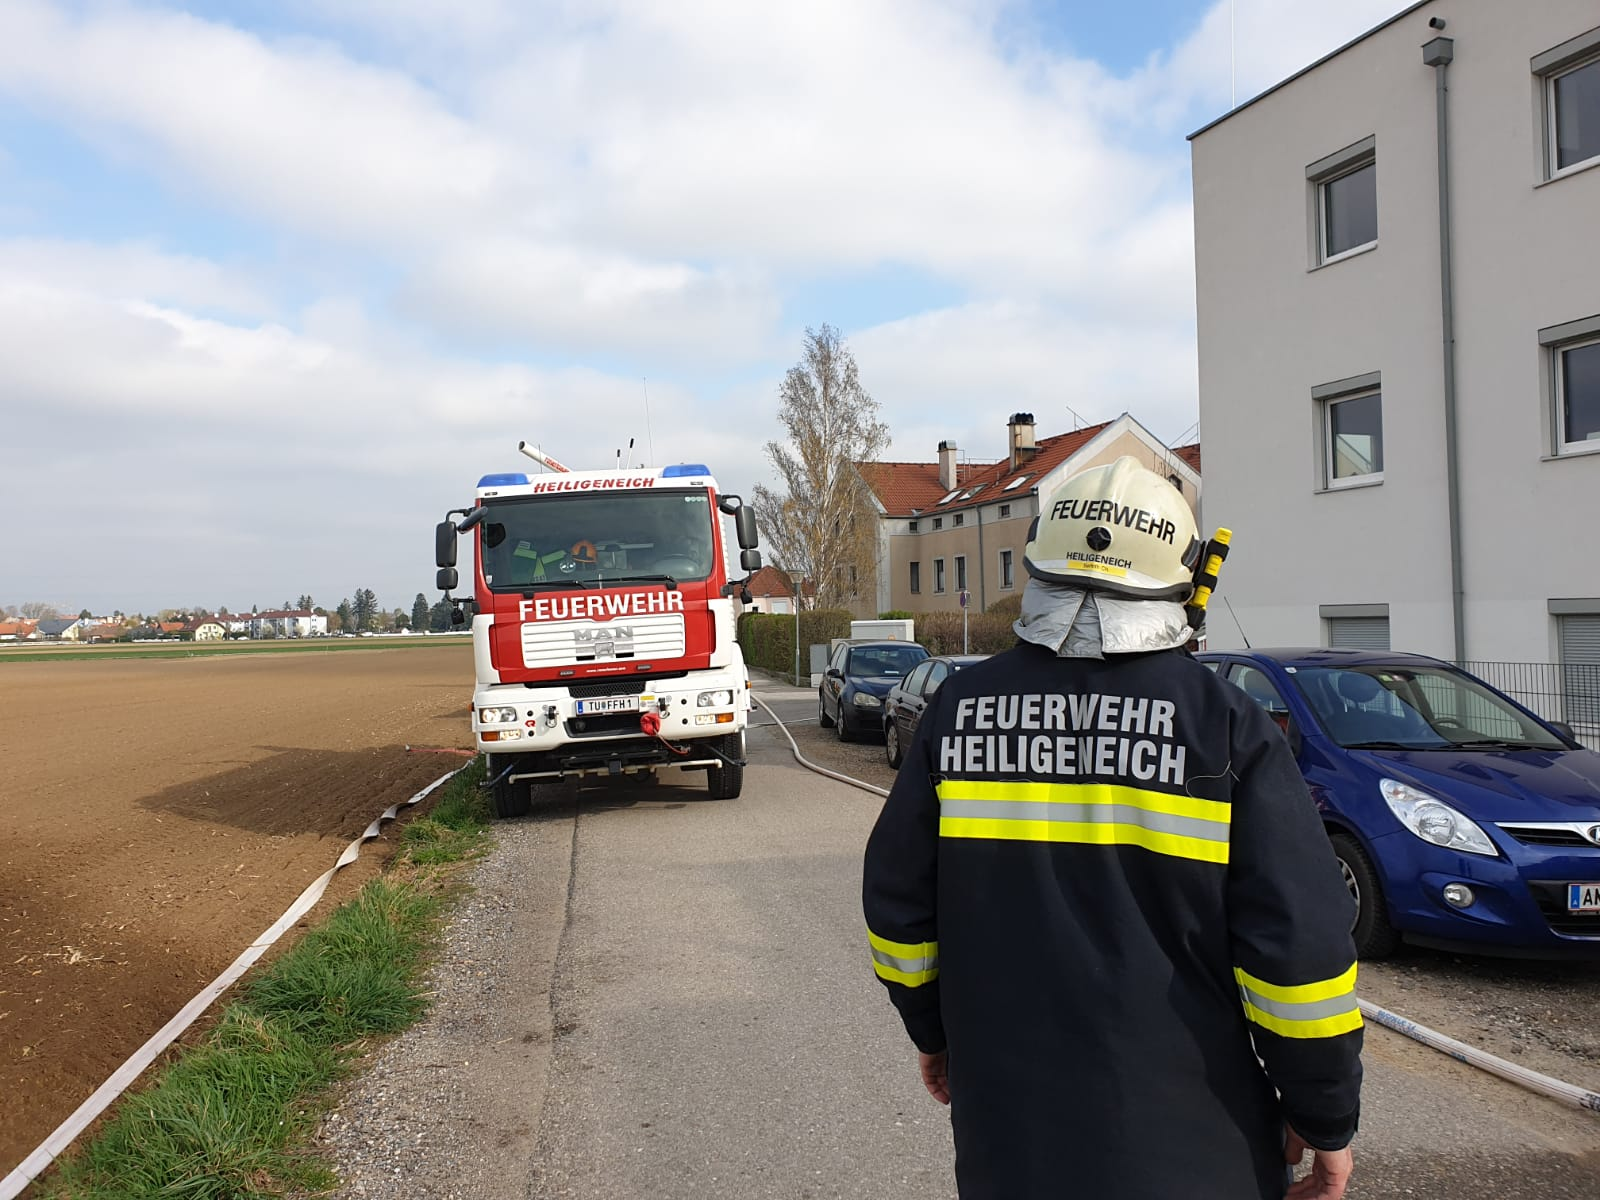 Brand in Tiefgarage (Übung)